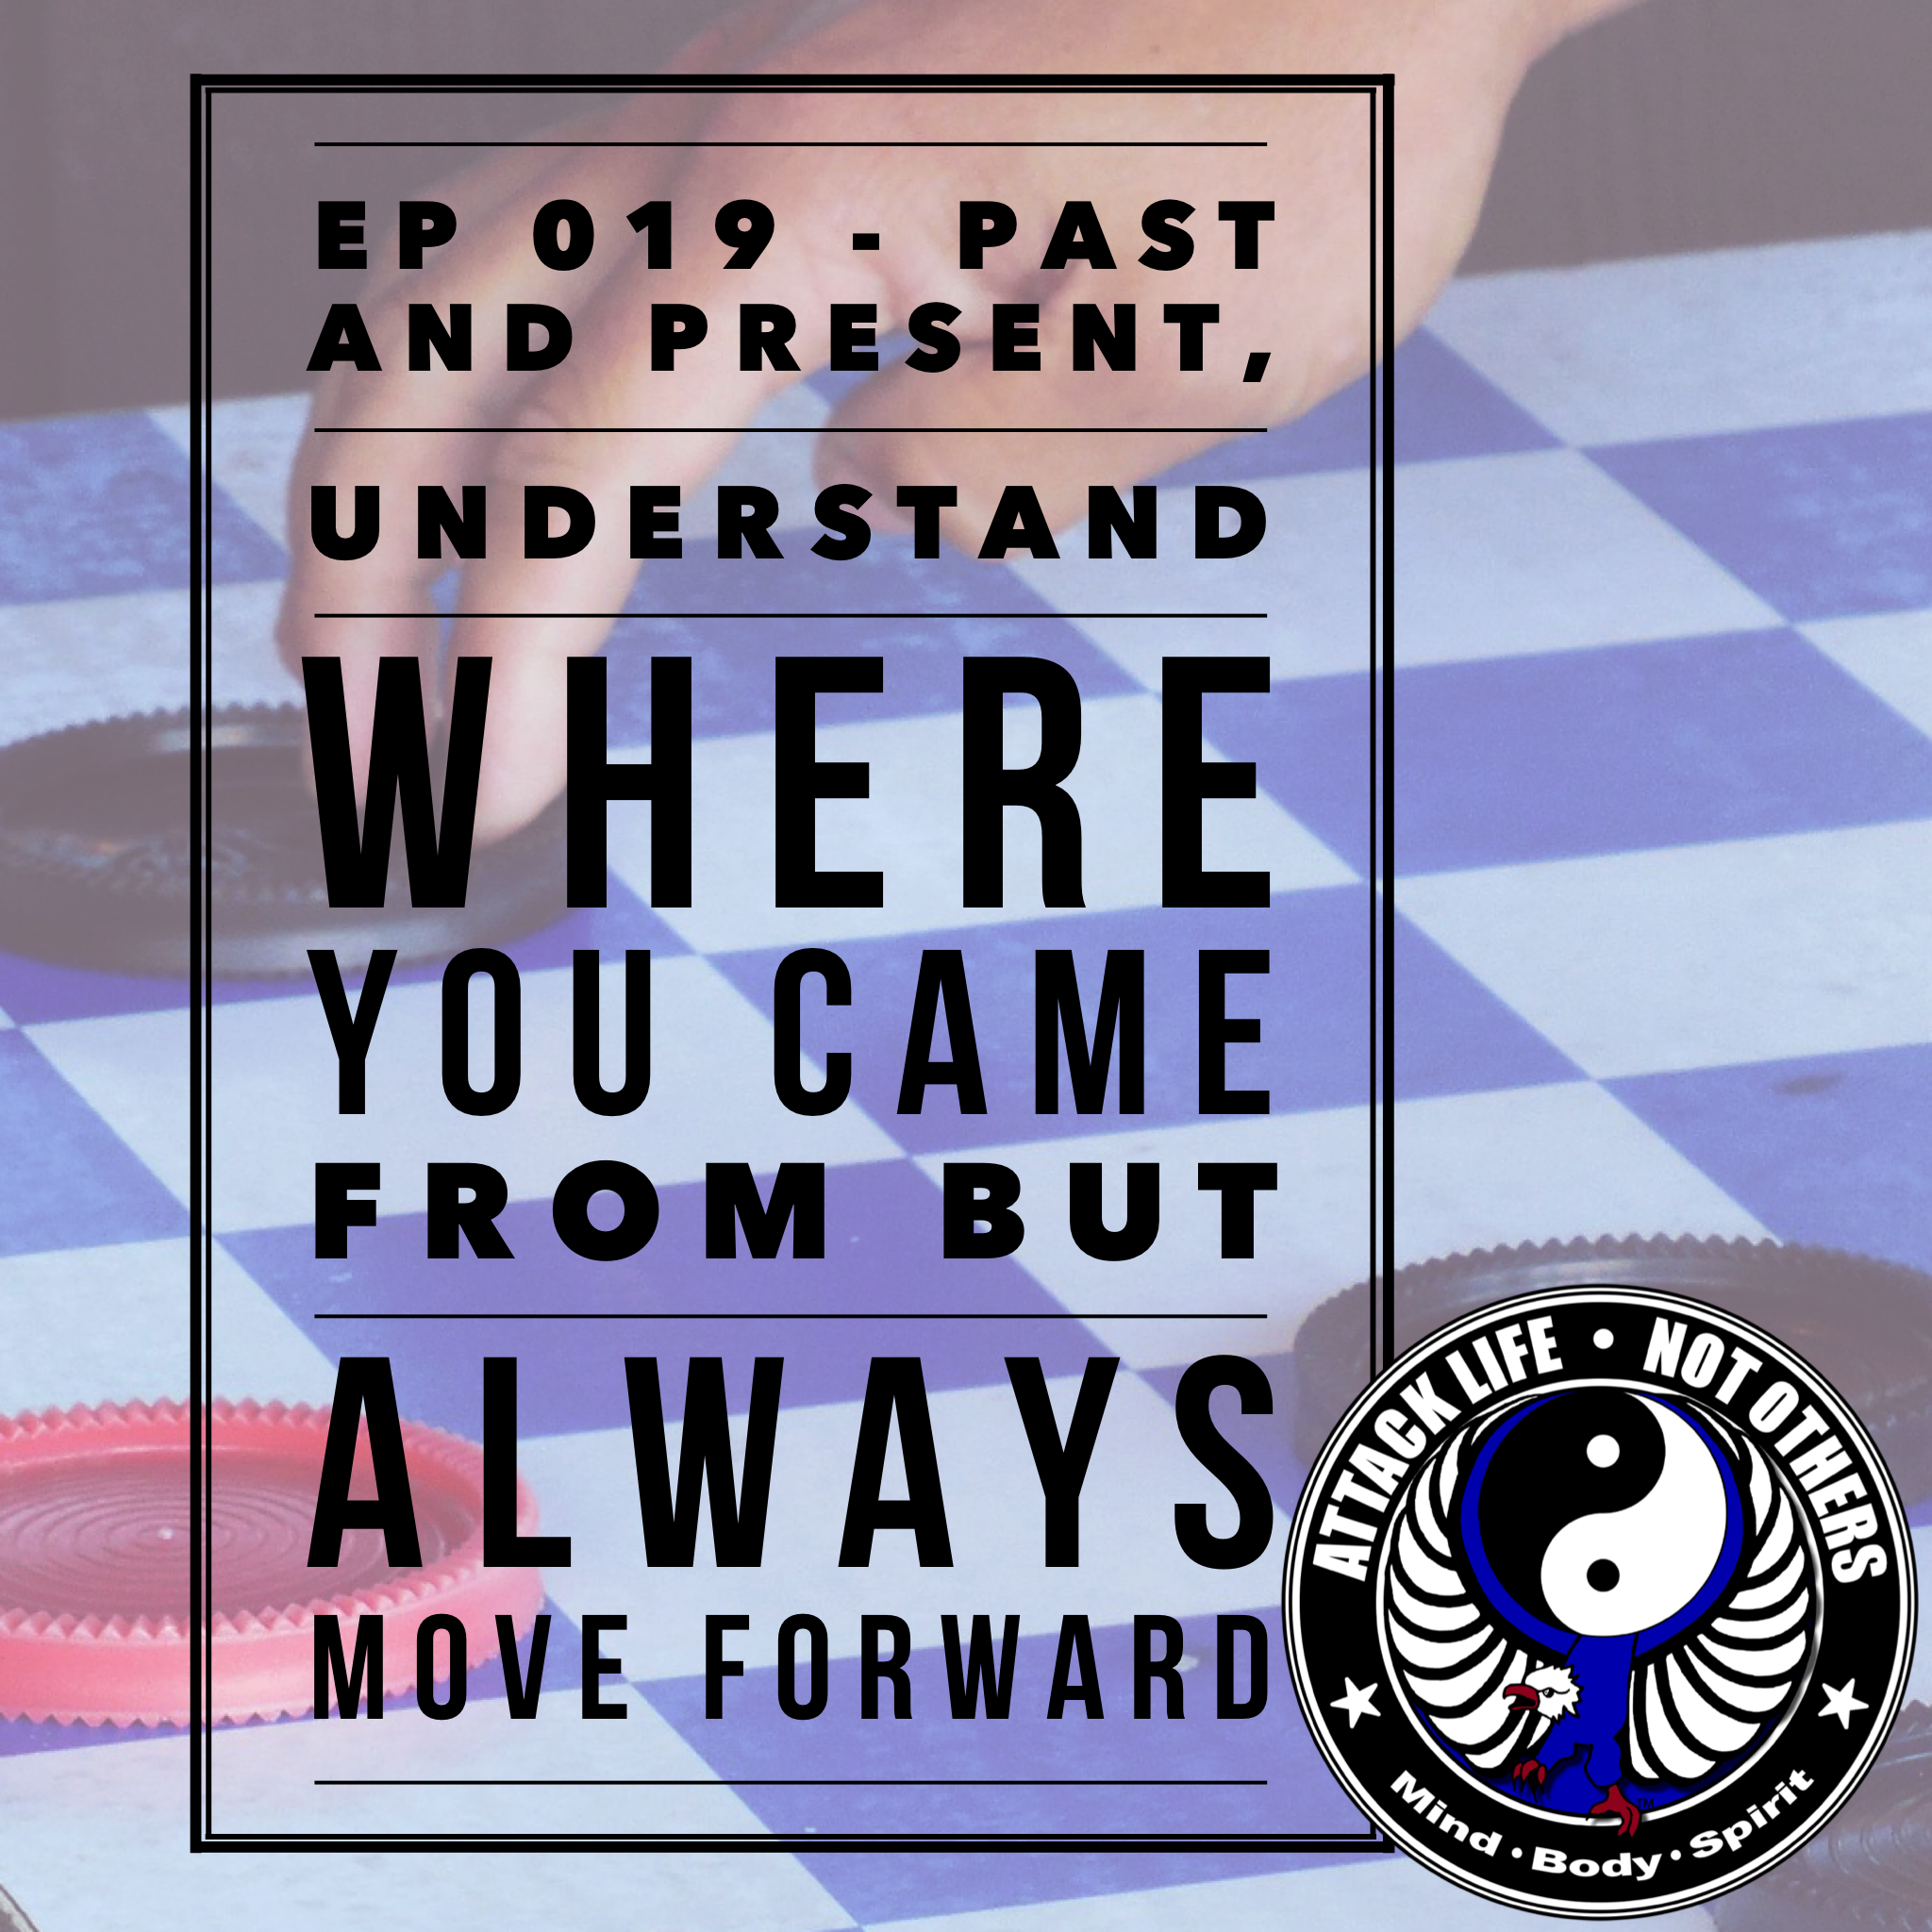 Ep 019 - Past and Present, Understand Where You Came From But Always Move Forward